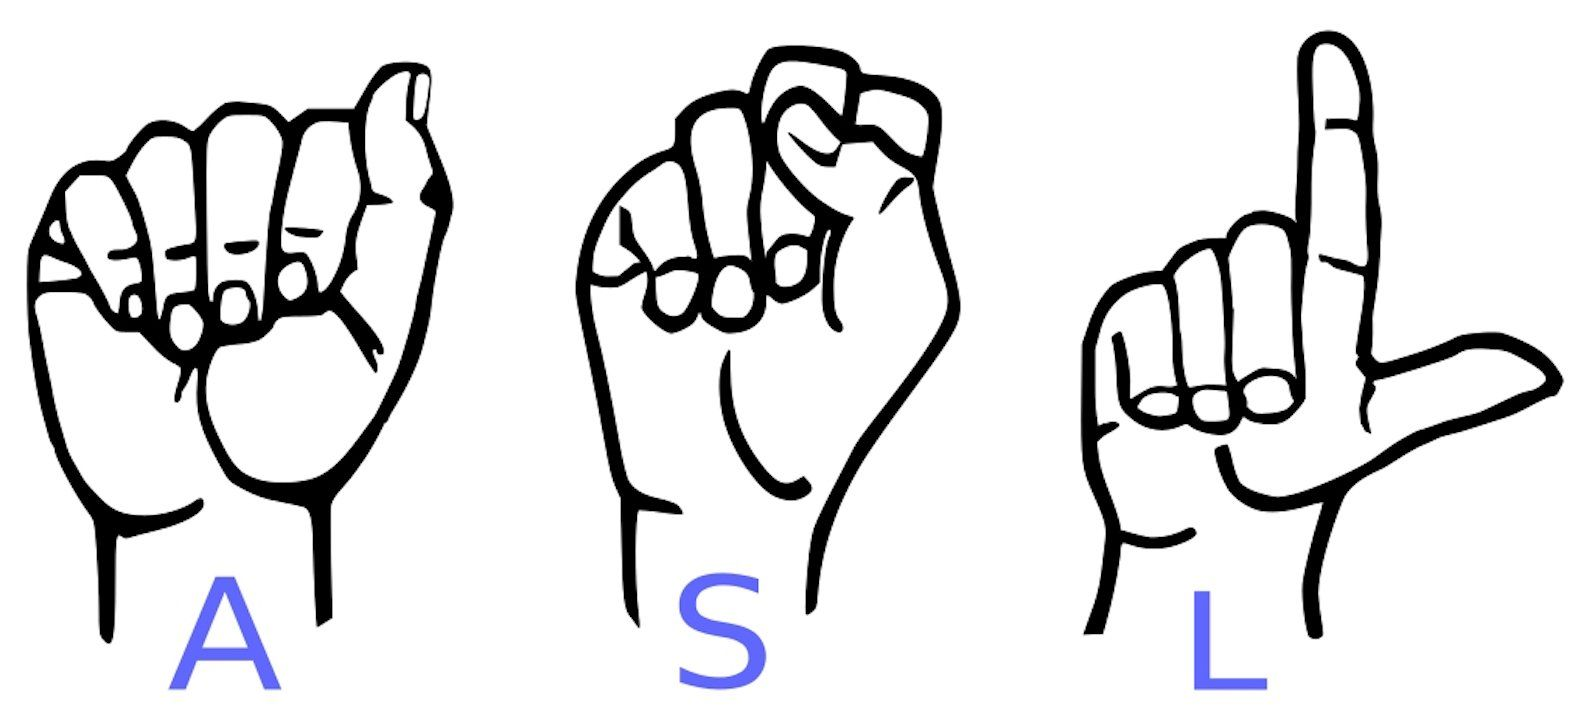 Asl Etiquette Baby Sign Language Learn To Sign British Sign Language